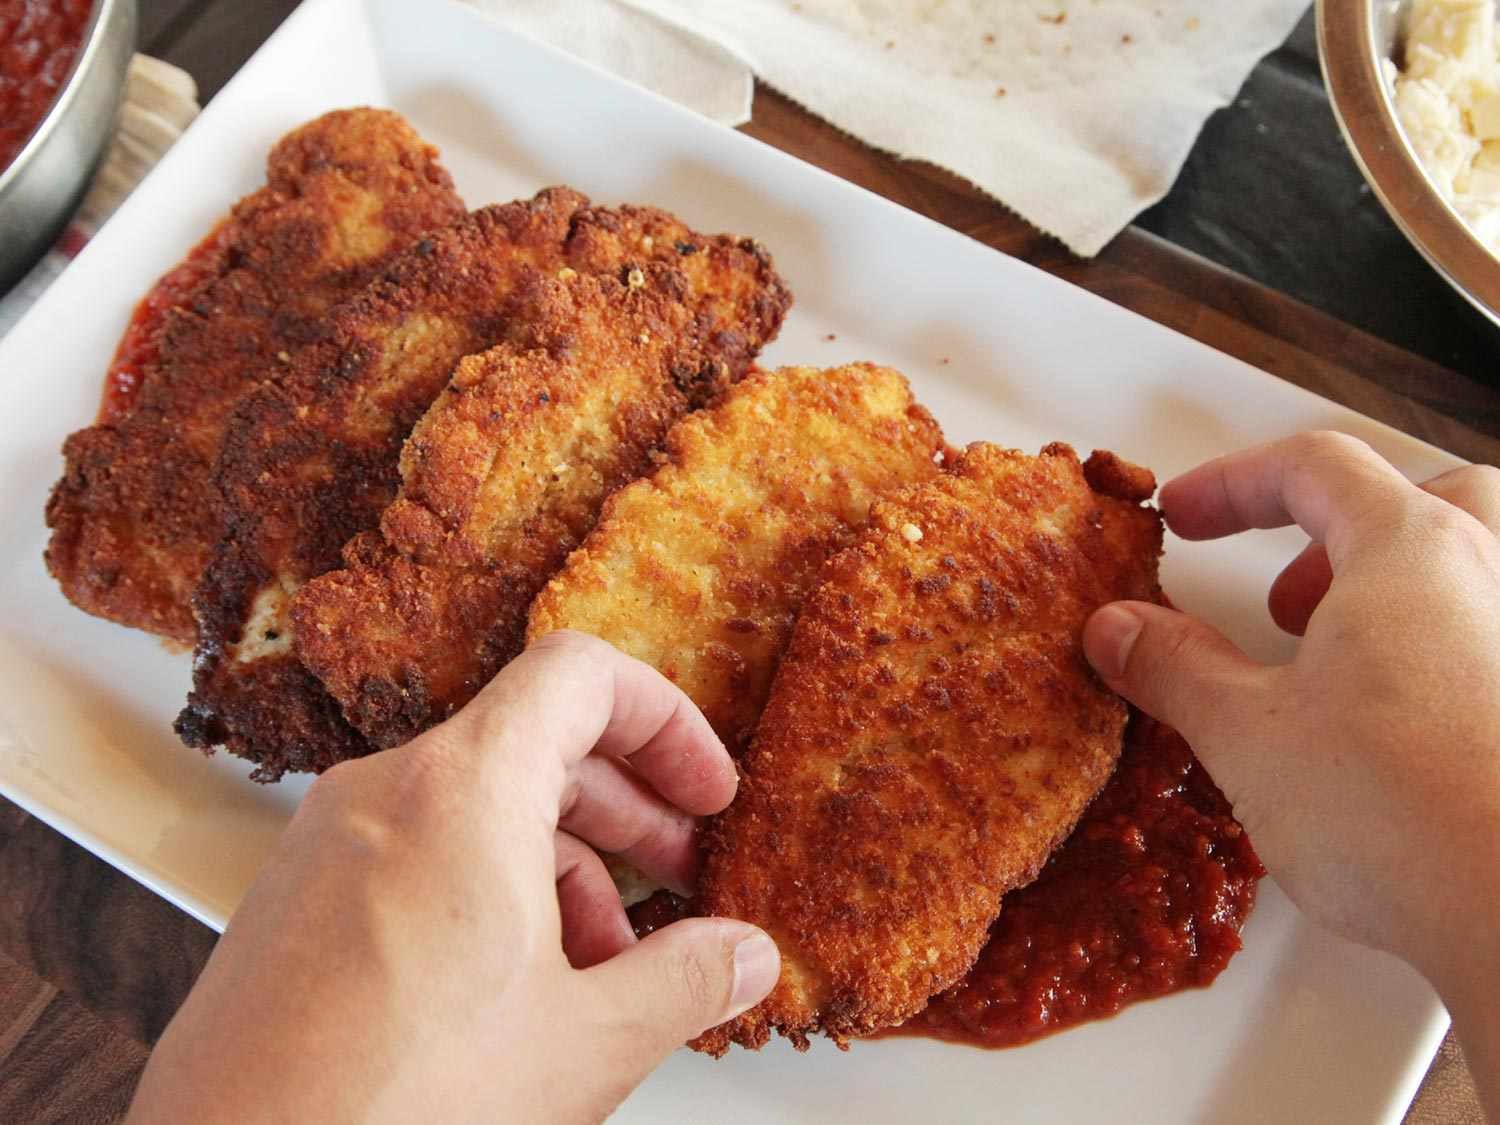 Laying down fried chicken breasts over red sauce